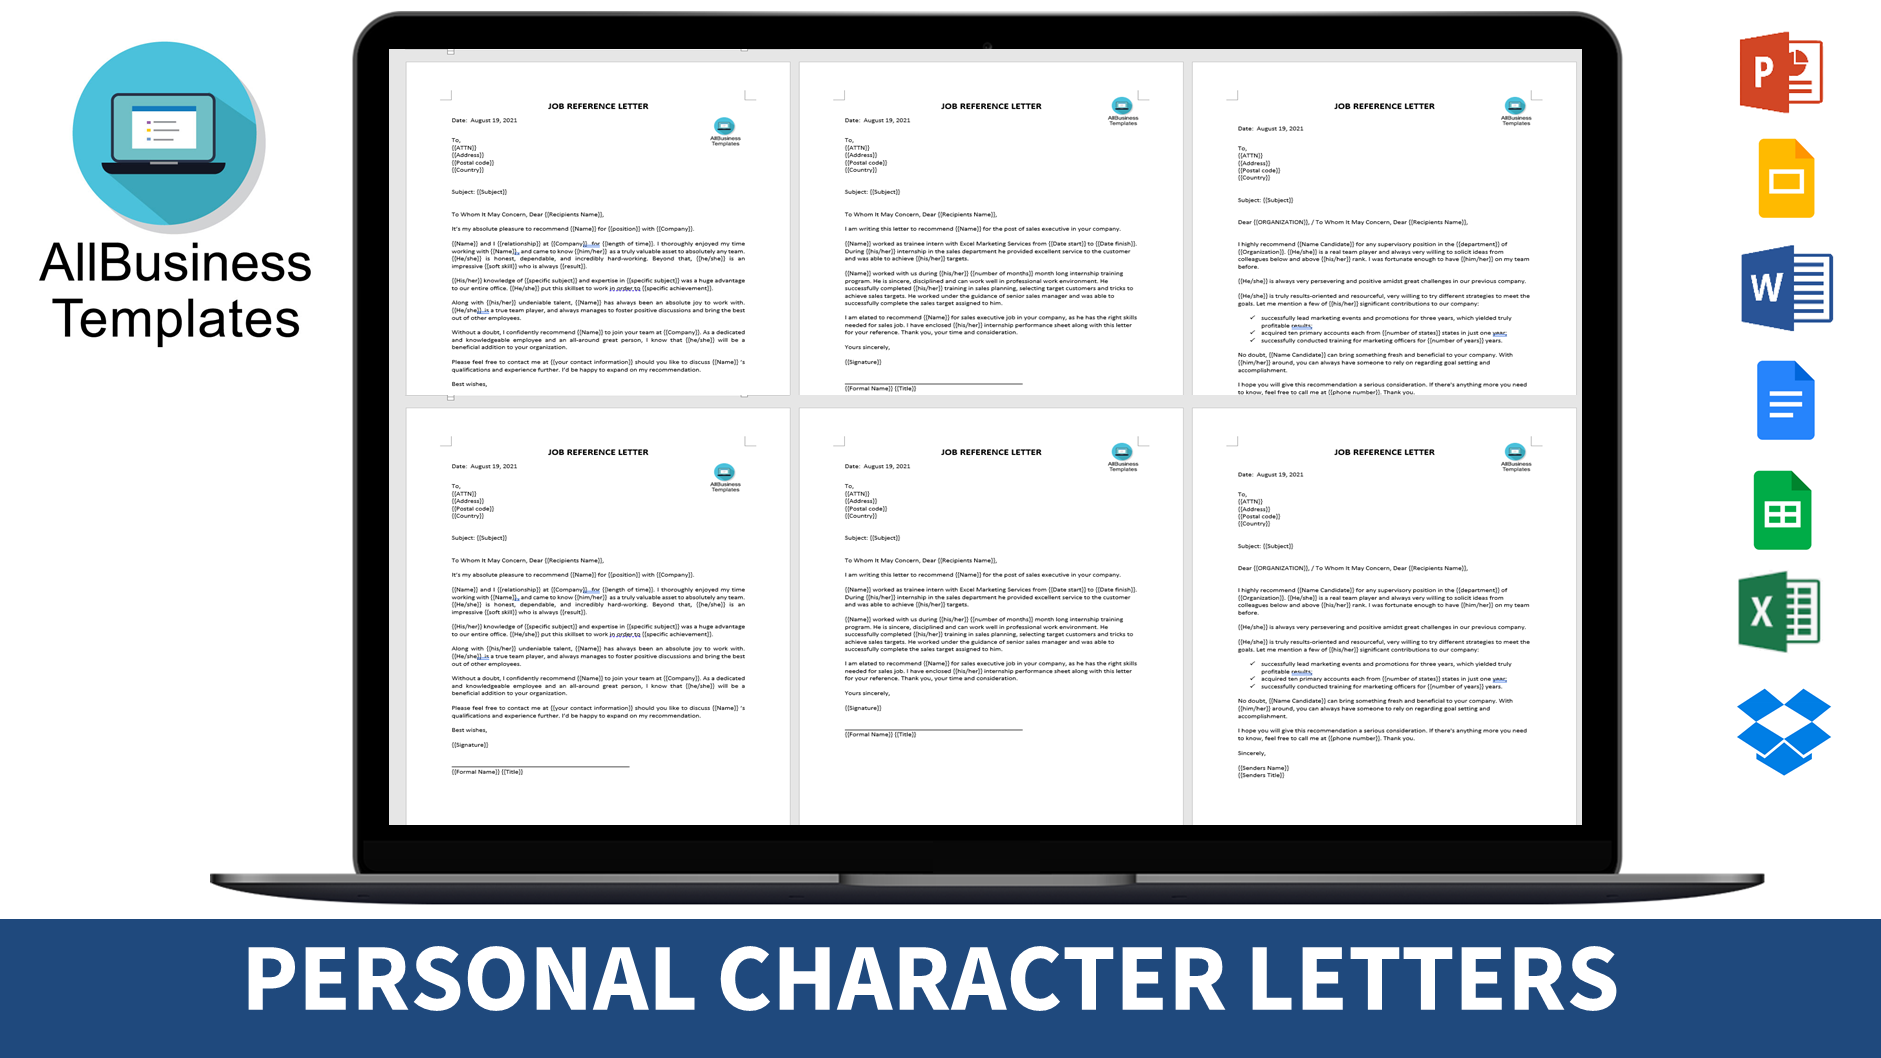 Professional Character Reference Letter from www.allbusinesstemplates.com